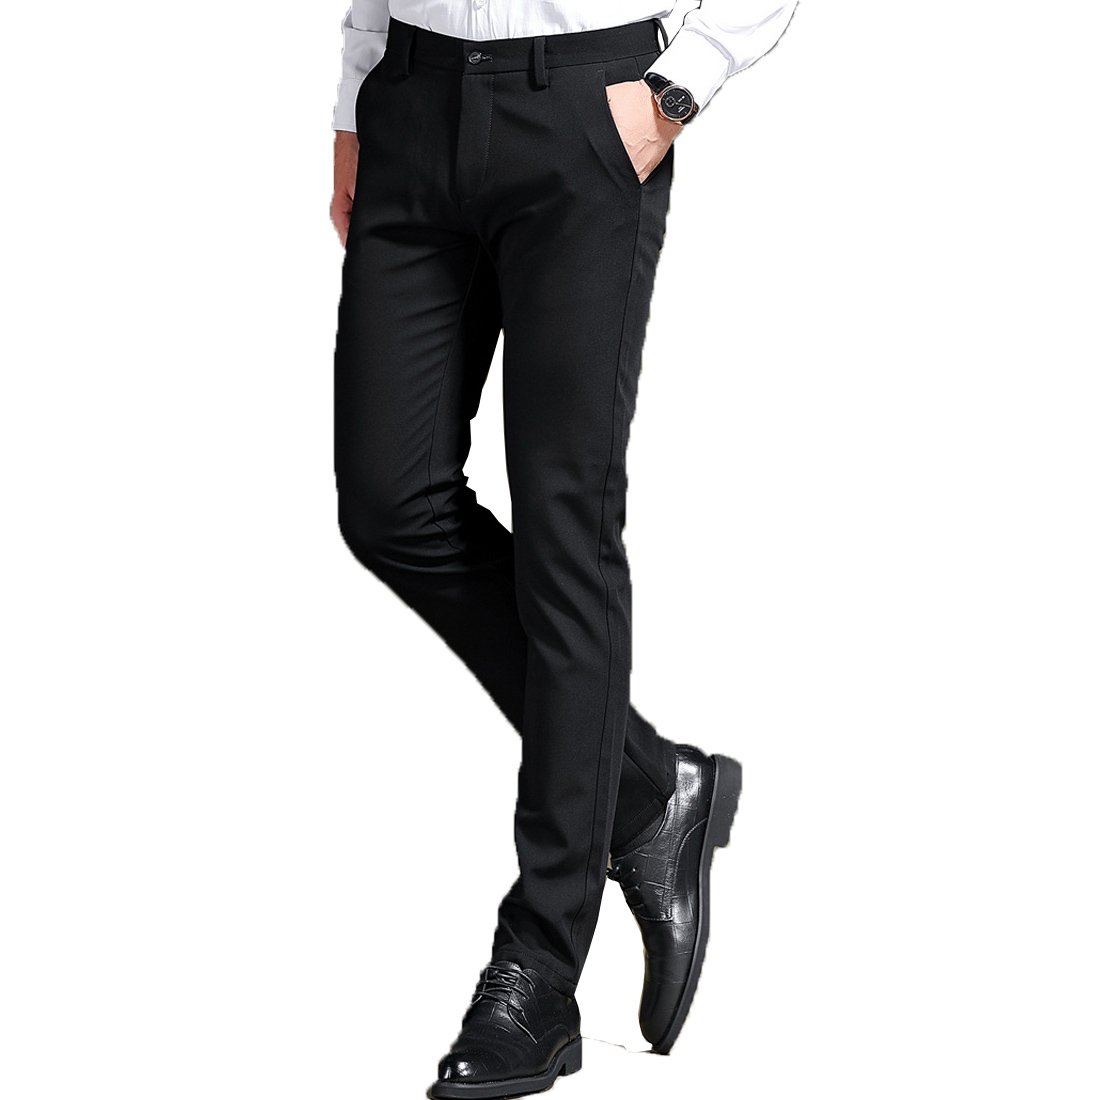 Men Business Smart Casual Pants Straight-leg Suit Long Pants Tailored Trousers Slim Fit Stretch Pants Plus Size Worker Luxury